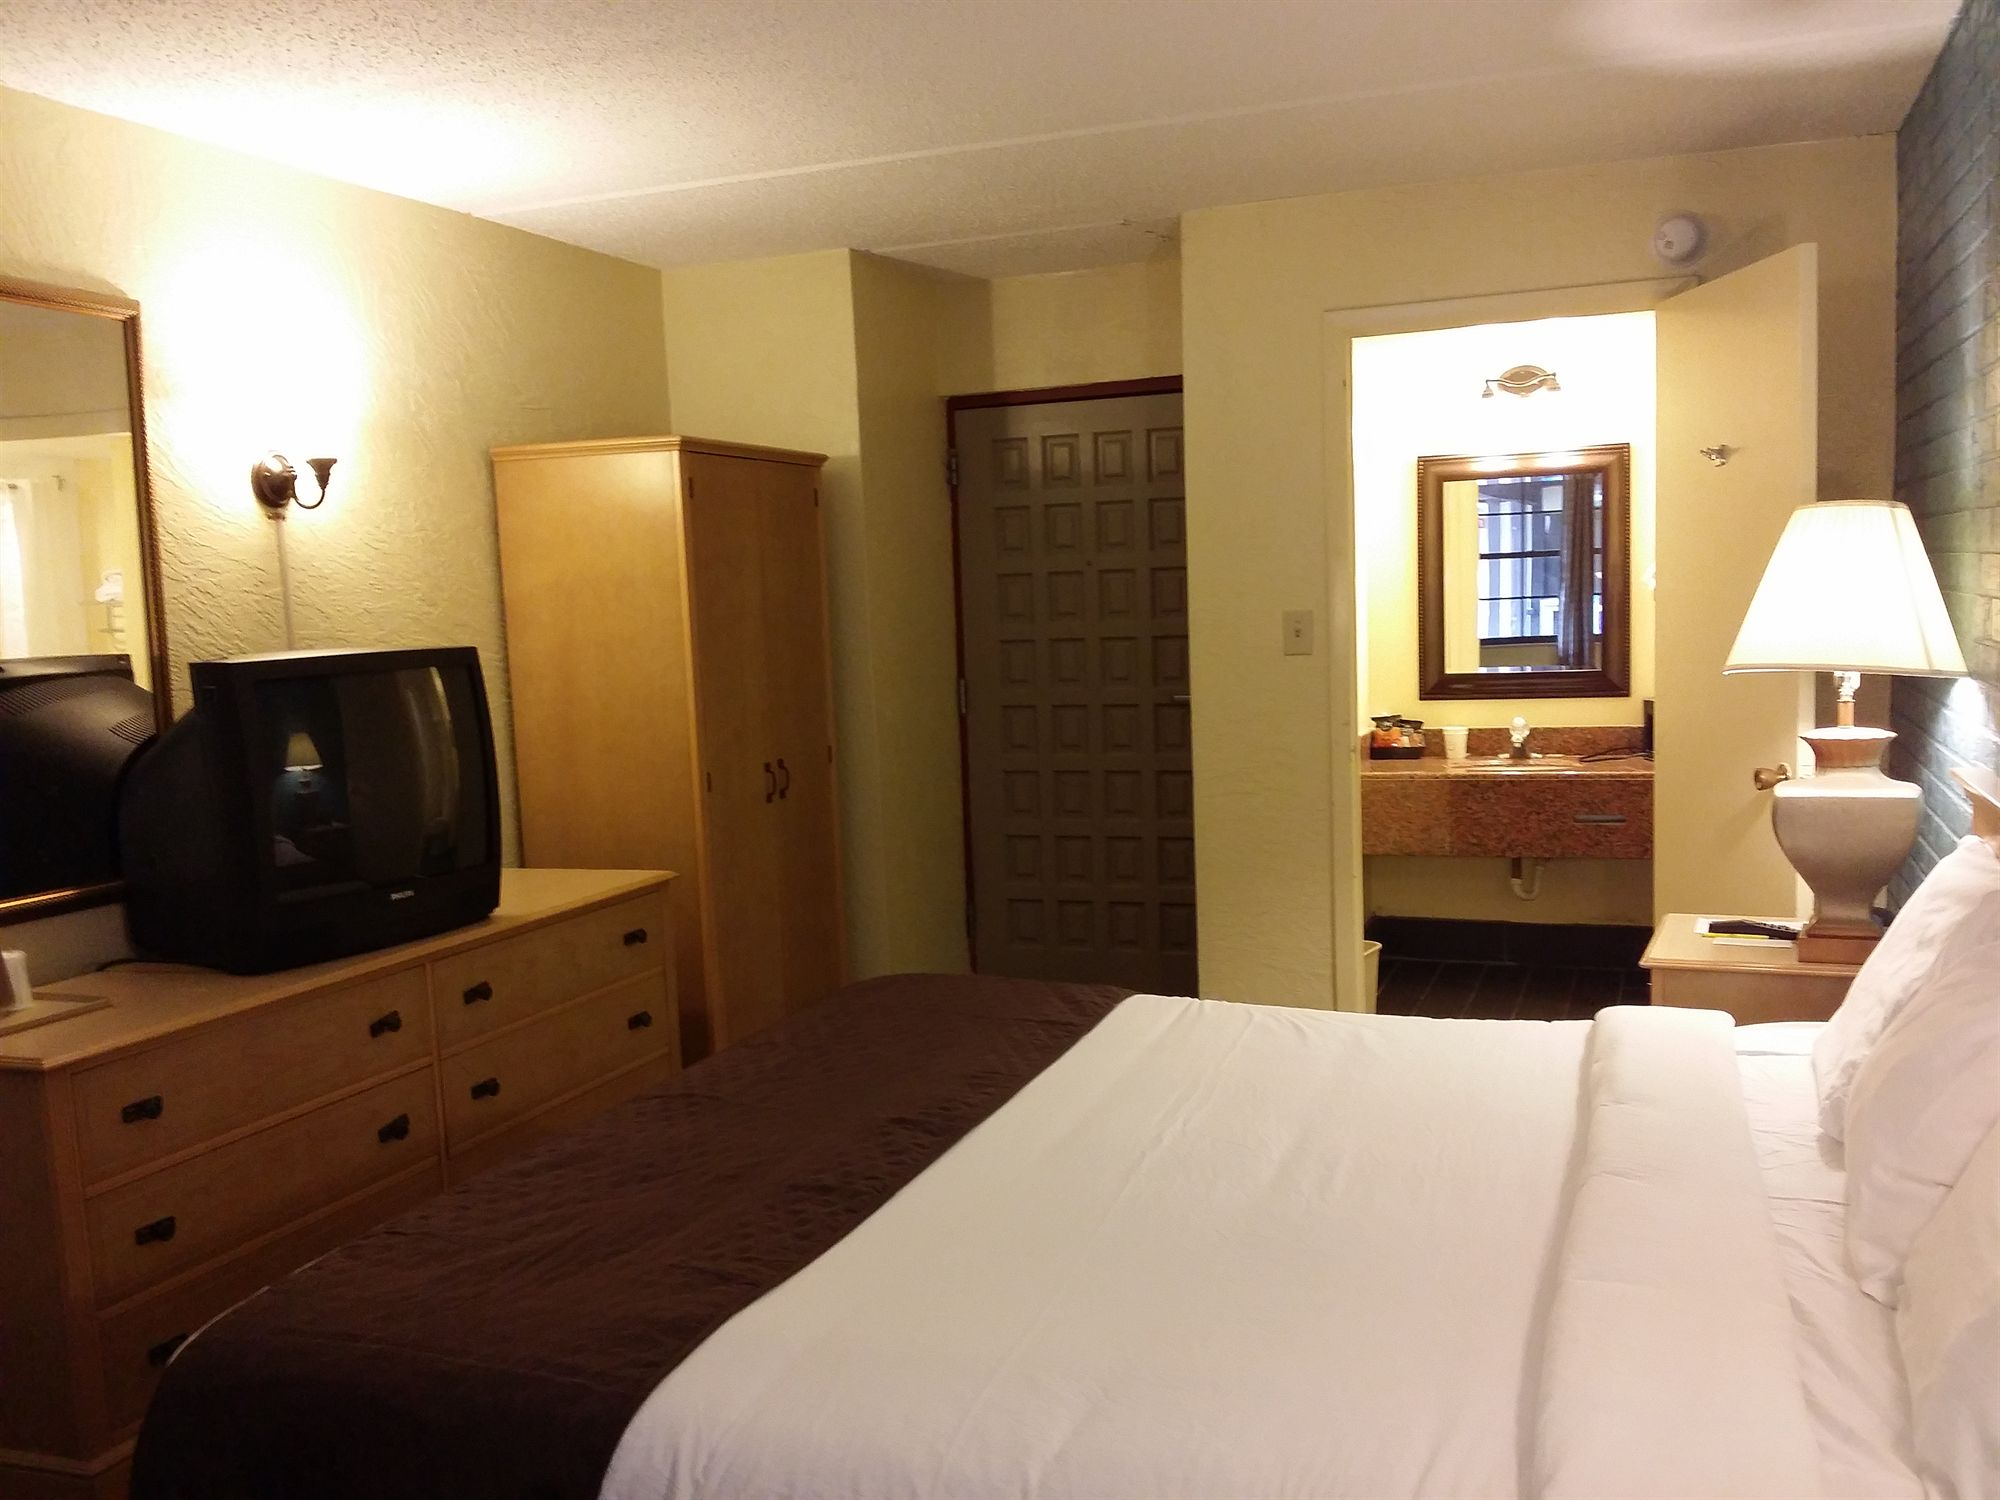 Travelodge Inn & Suites in Tallahassee, FL